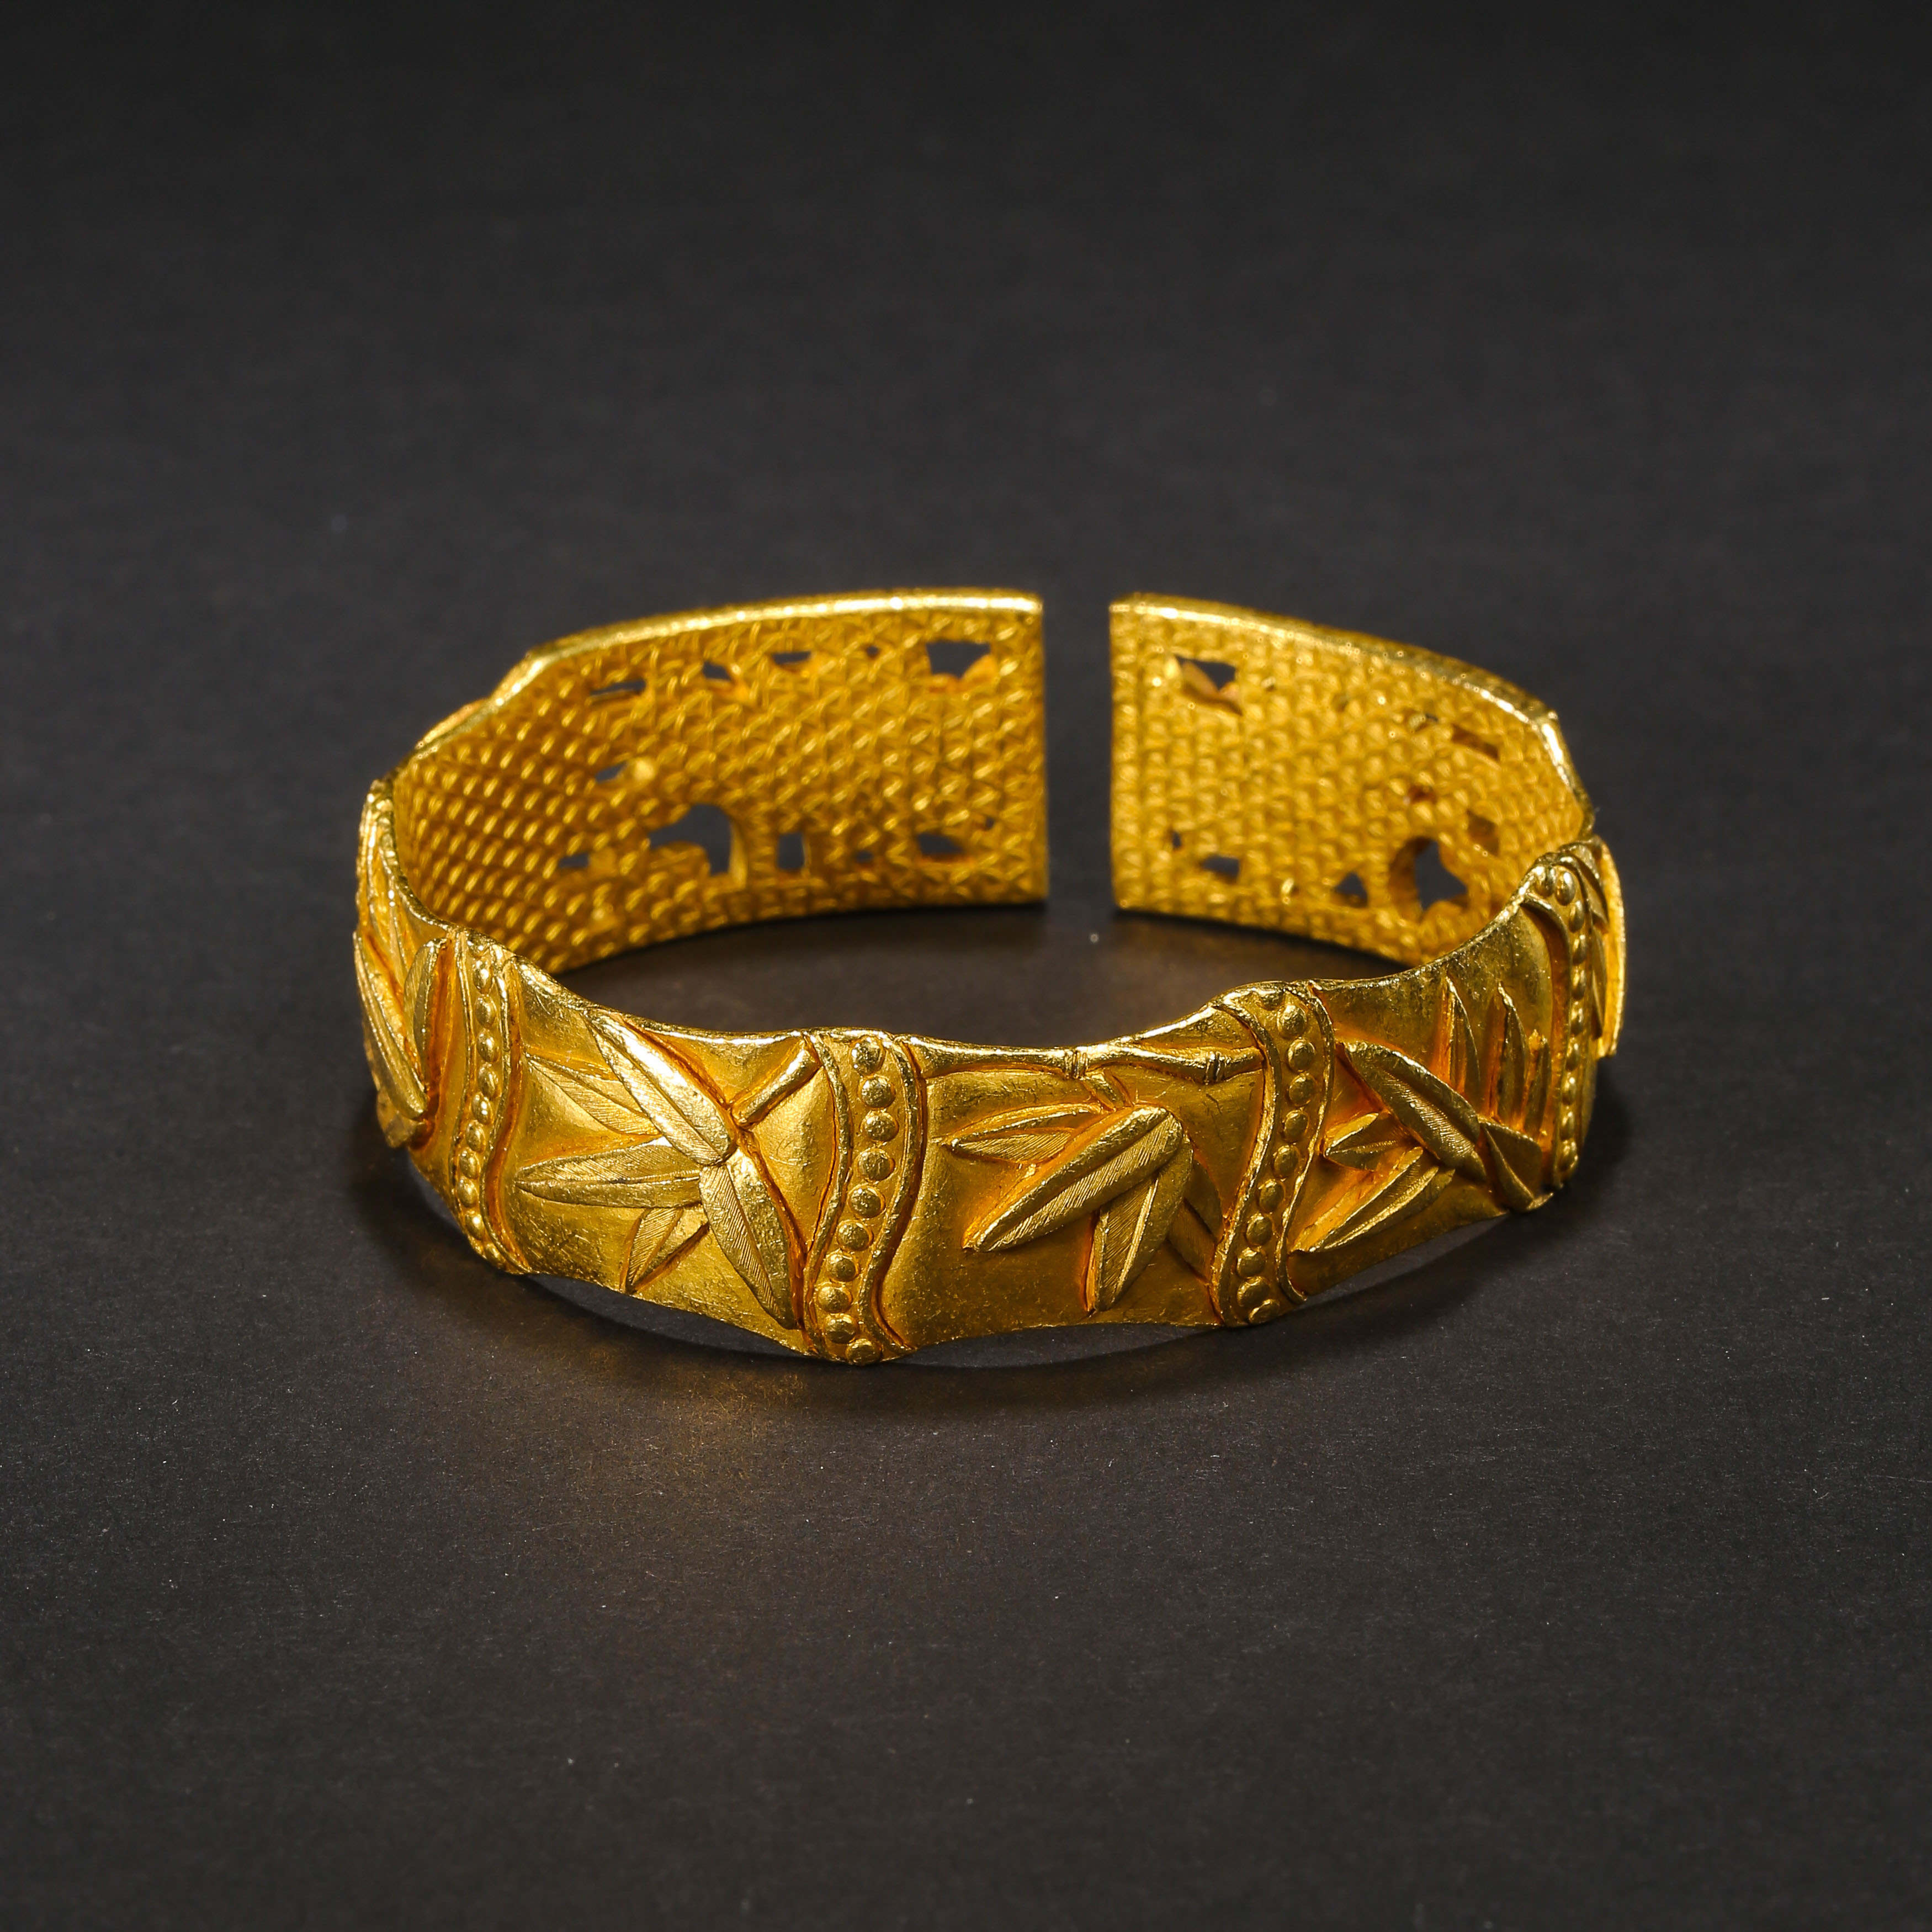 A PAIR OF PURE GOLD BRACELETS, QING DYNASTY, CHINA - Image 7 of 11